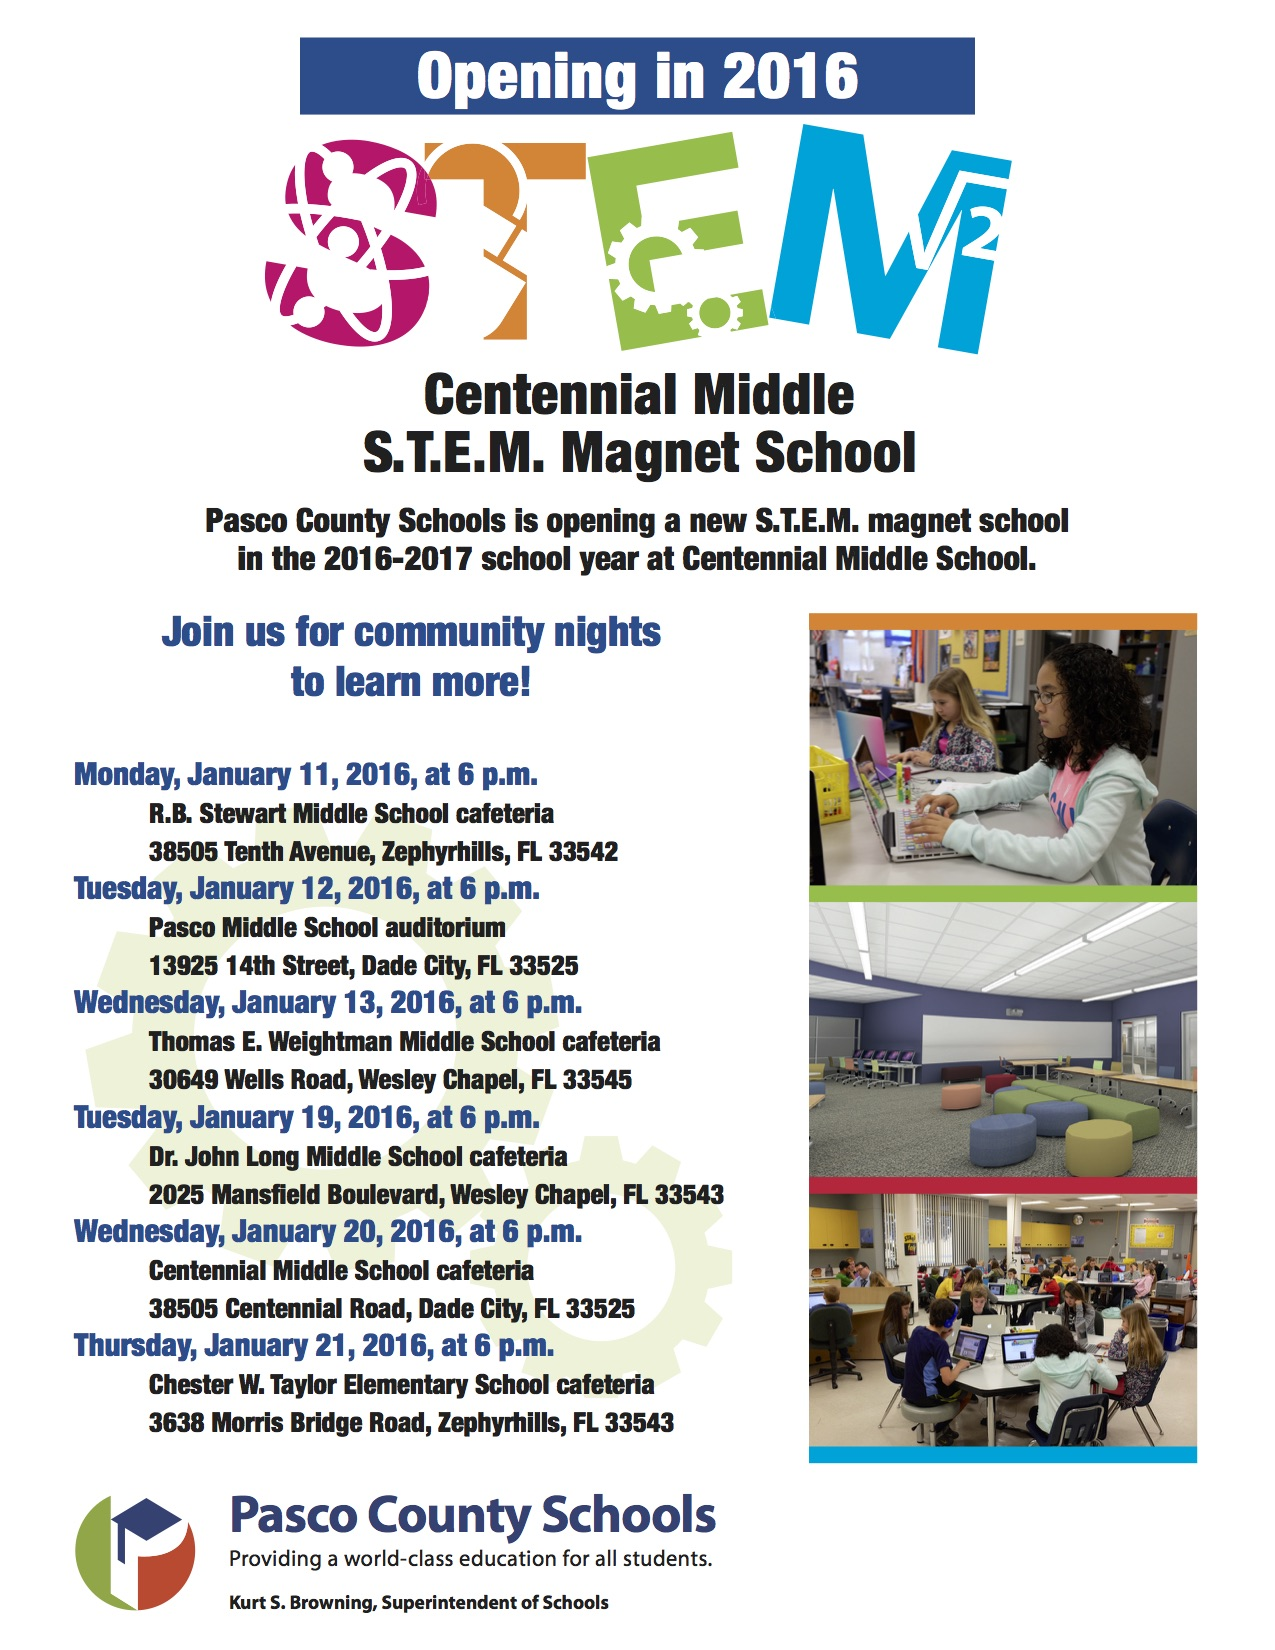 CENMS Magnet community[7]